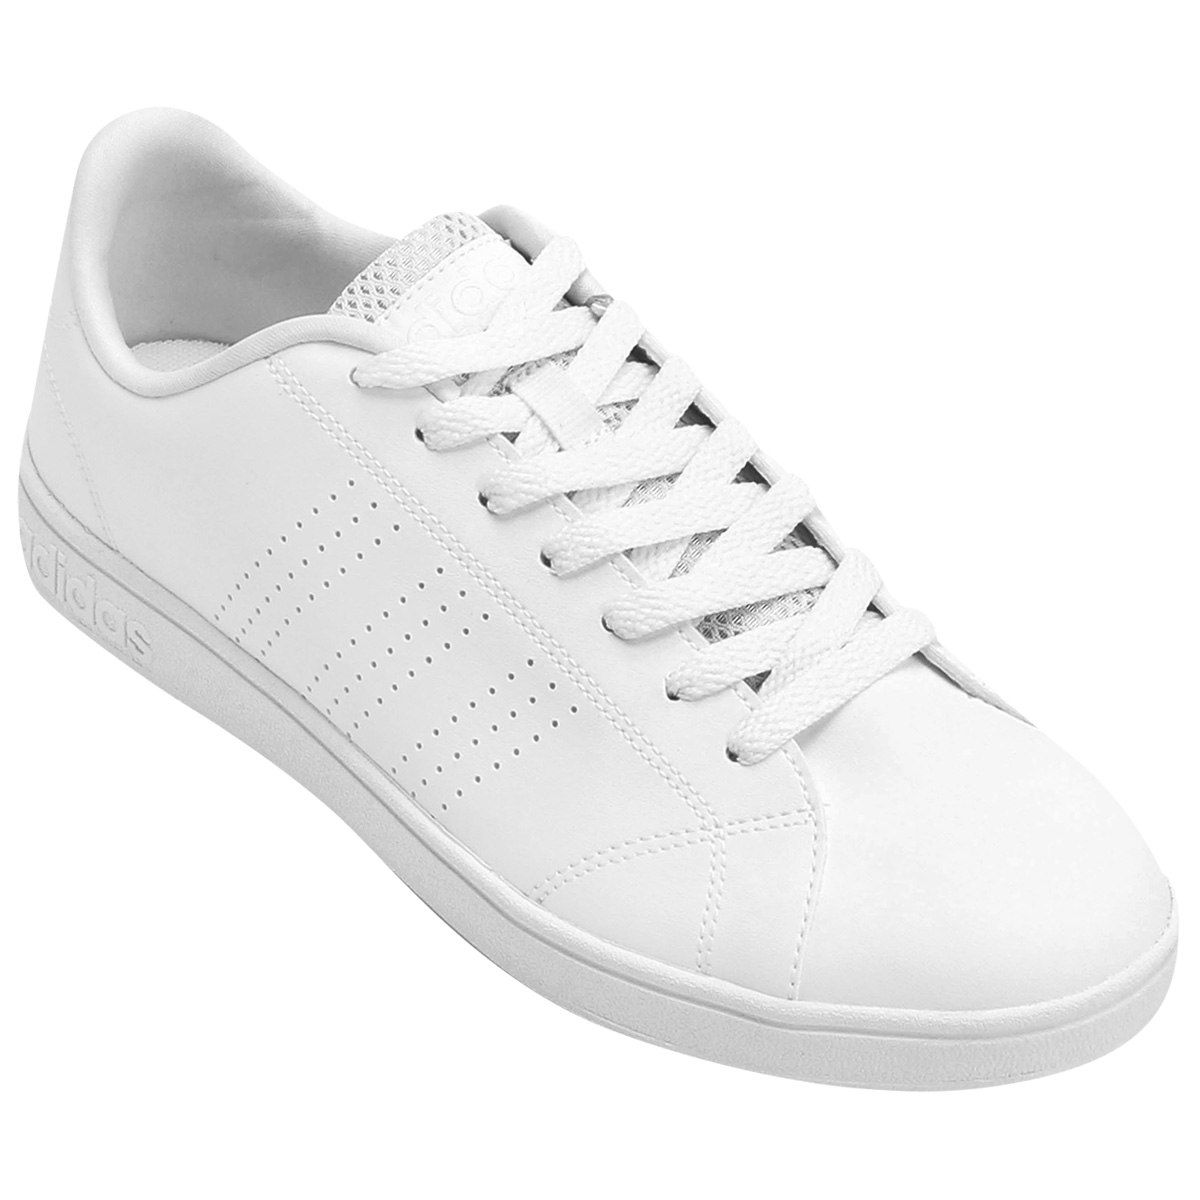 Tênis Adidas Advantage Clean VS - Branco